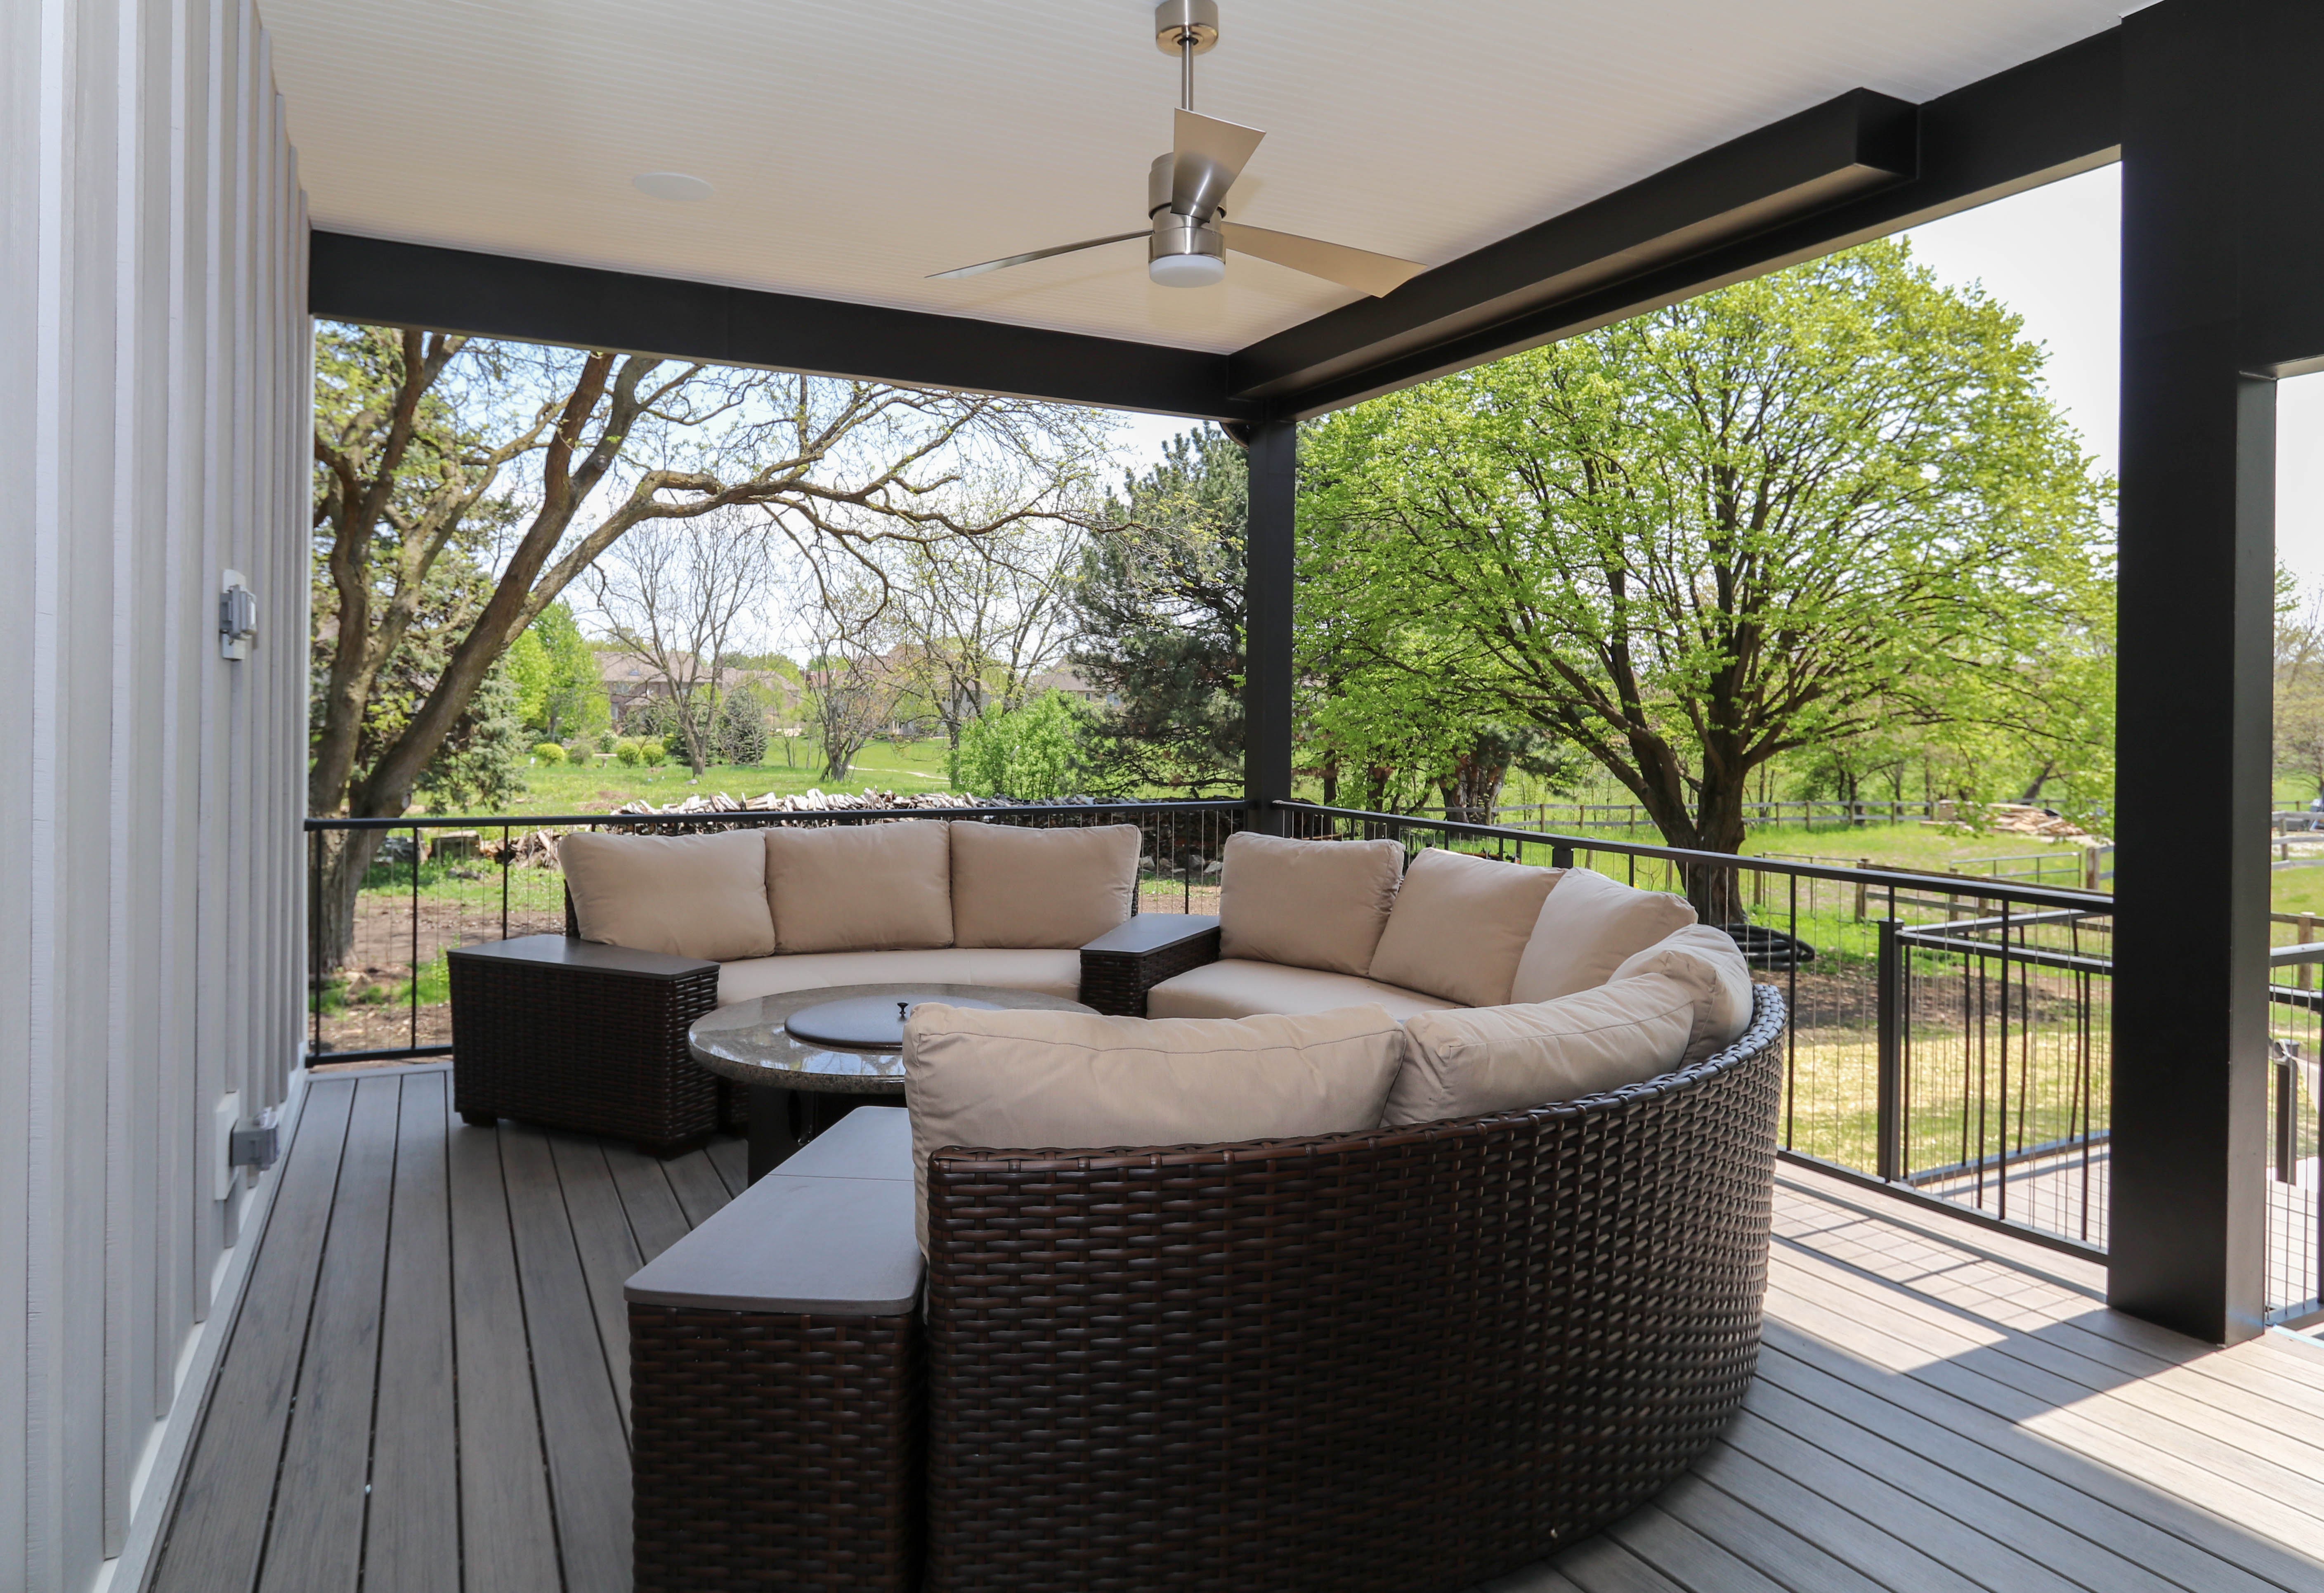 Having A Covered Area Protects Your Outdoor Furniture From Getting Washed  Out By The Sun.